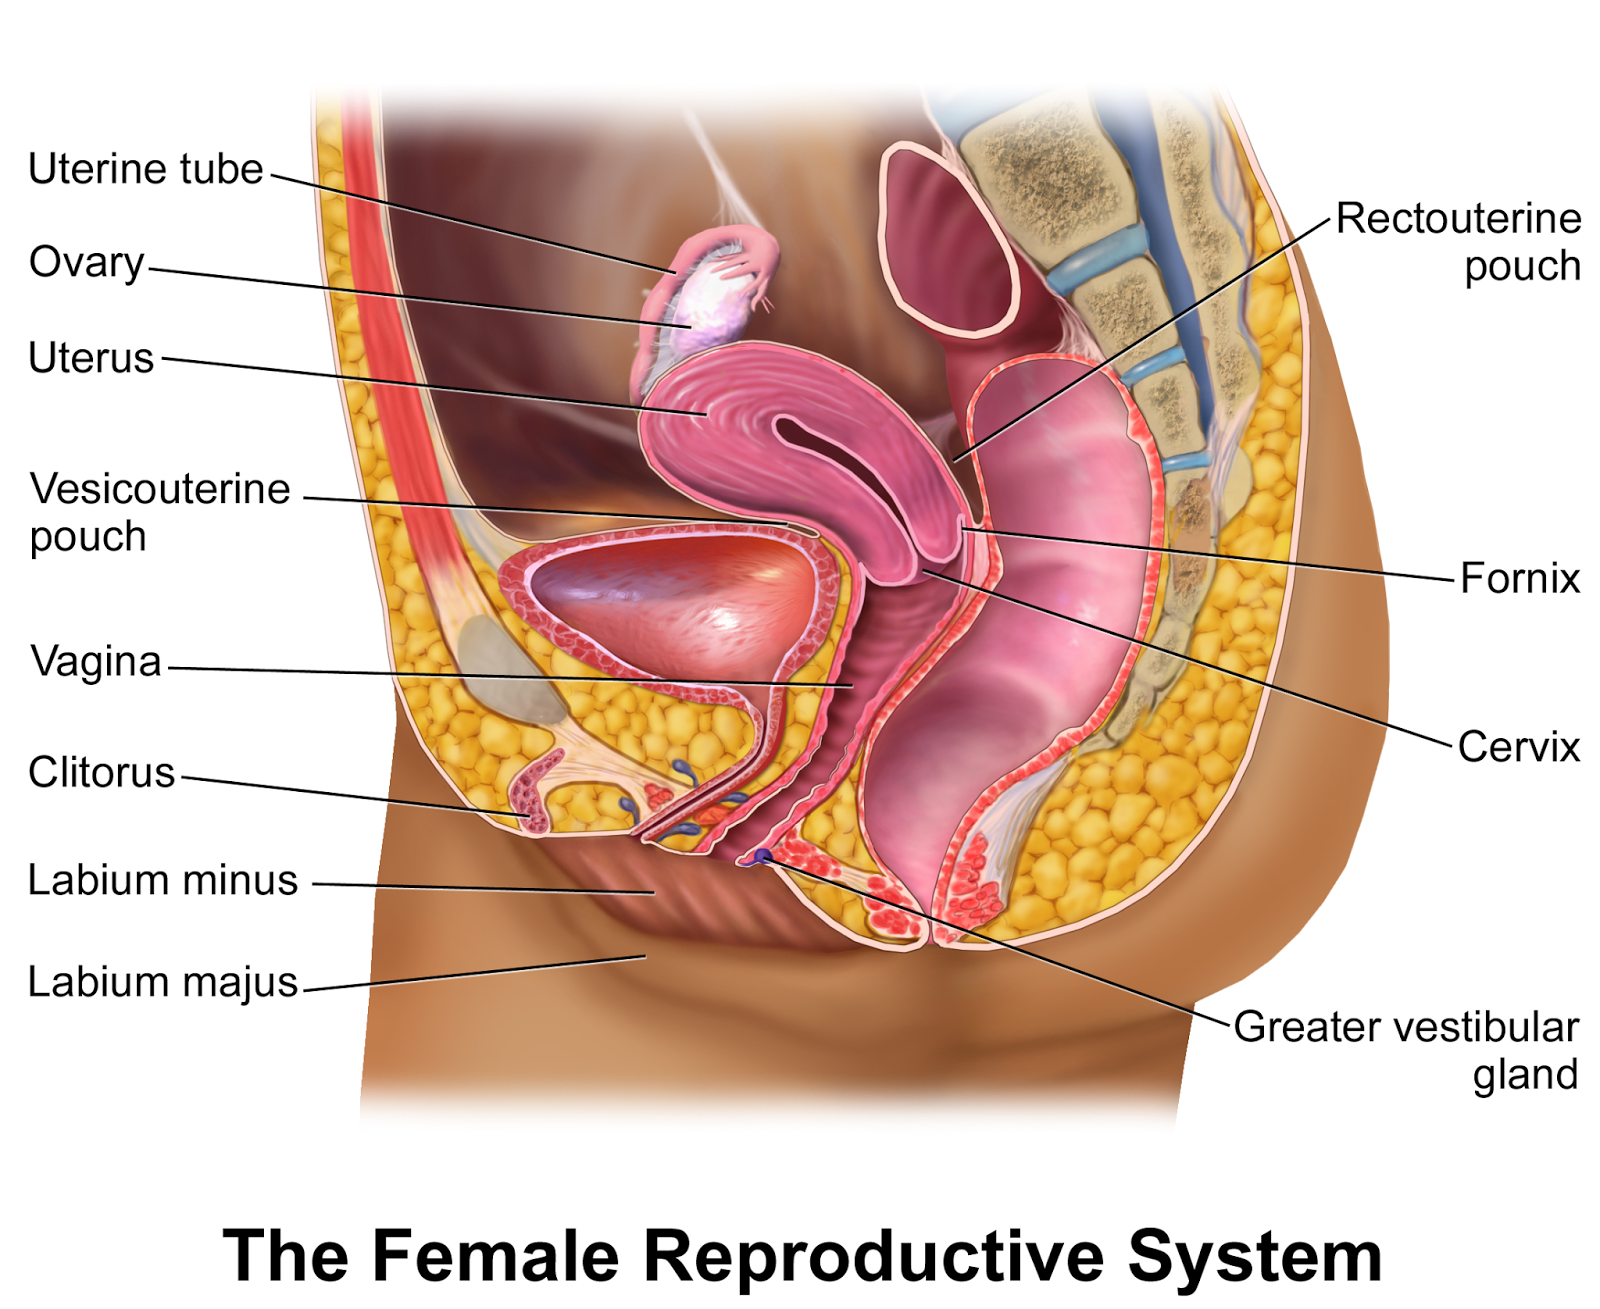 "Know About The Vagina   The vagina is a muscular ""barrel"" about 3-4 inches long, in its non-aroused state, lined with mucous membranes, similar to the lining of the mouth.    The vagina is angled upward at around a 65 degree angle, which very closely corresponds to the angle of the average erect penis.    The vagina isn't a wide-open gaping hole. It's a collapsed space that expands and contracts when excited or penetrated. When in a non-aroused and un-penetrated state, the walls of the vagina collapse against each other, sort of like a fire hose.     The vaginal lining is pink and glistening and has folds, called rugae, which give the vagina a ribbed texture. These folds are much more pronounced in younger women and gradually disappear as a woman grows older.     The vagina stretches out when the lady gets excited. The cervix and uterus pull up and back, extending the vagina by about 1-3 inches. The back of the vagina balloons out to create more space.    2/3 of the nerve endings in the vagina are located in the first 1/3 of the vagina.     The first 2 inches of the vagina are the tightest during intercourse, due to the vaginal swelling and engorgement of blood.    Vaginas of sexually mature women are elastic enough to accommodate nearly any sized penis.    Around 1 in 5000 women is born with a disorder called vaginal agenesis, in which they are born without a vagina, in spite of the presence of external genitalia, such as labia and a clitoris.     Shortly after stimulation, the vagina begins to lubricate, forming what looks like beads of sweat all over the vaginal walls."